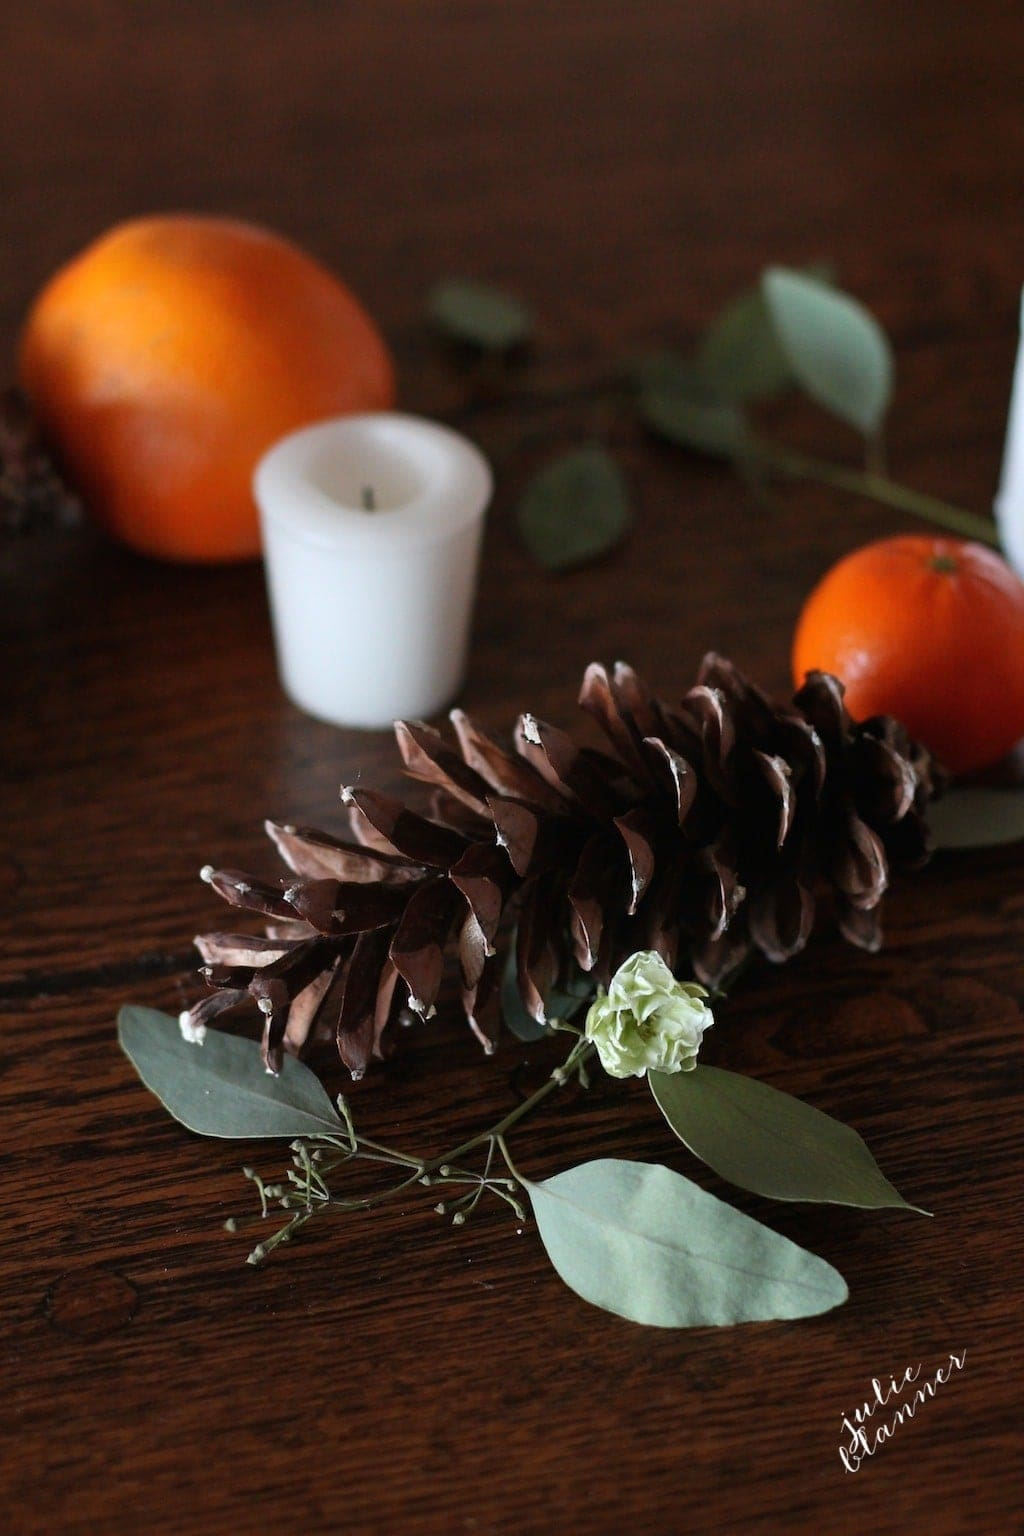 Gorgeous fall or winter table setting - beautiful rustic floral table runner